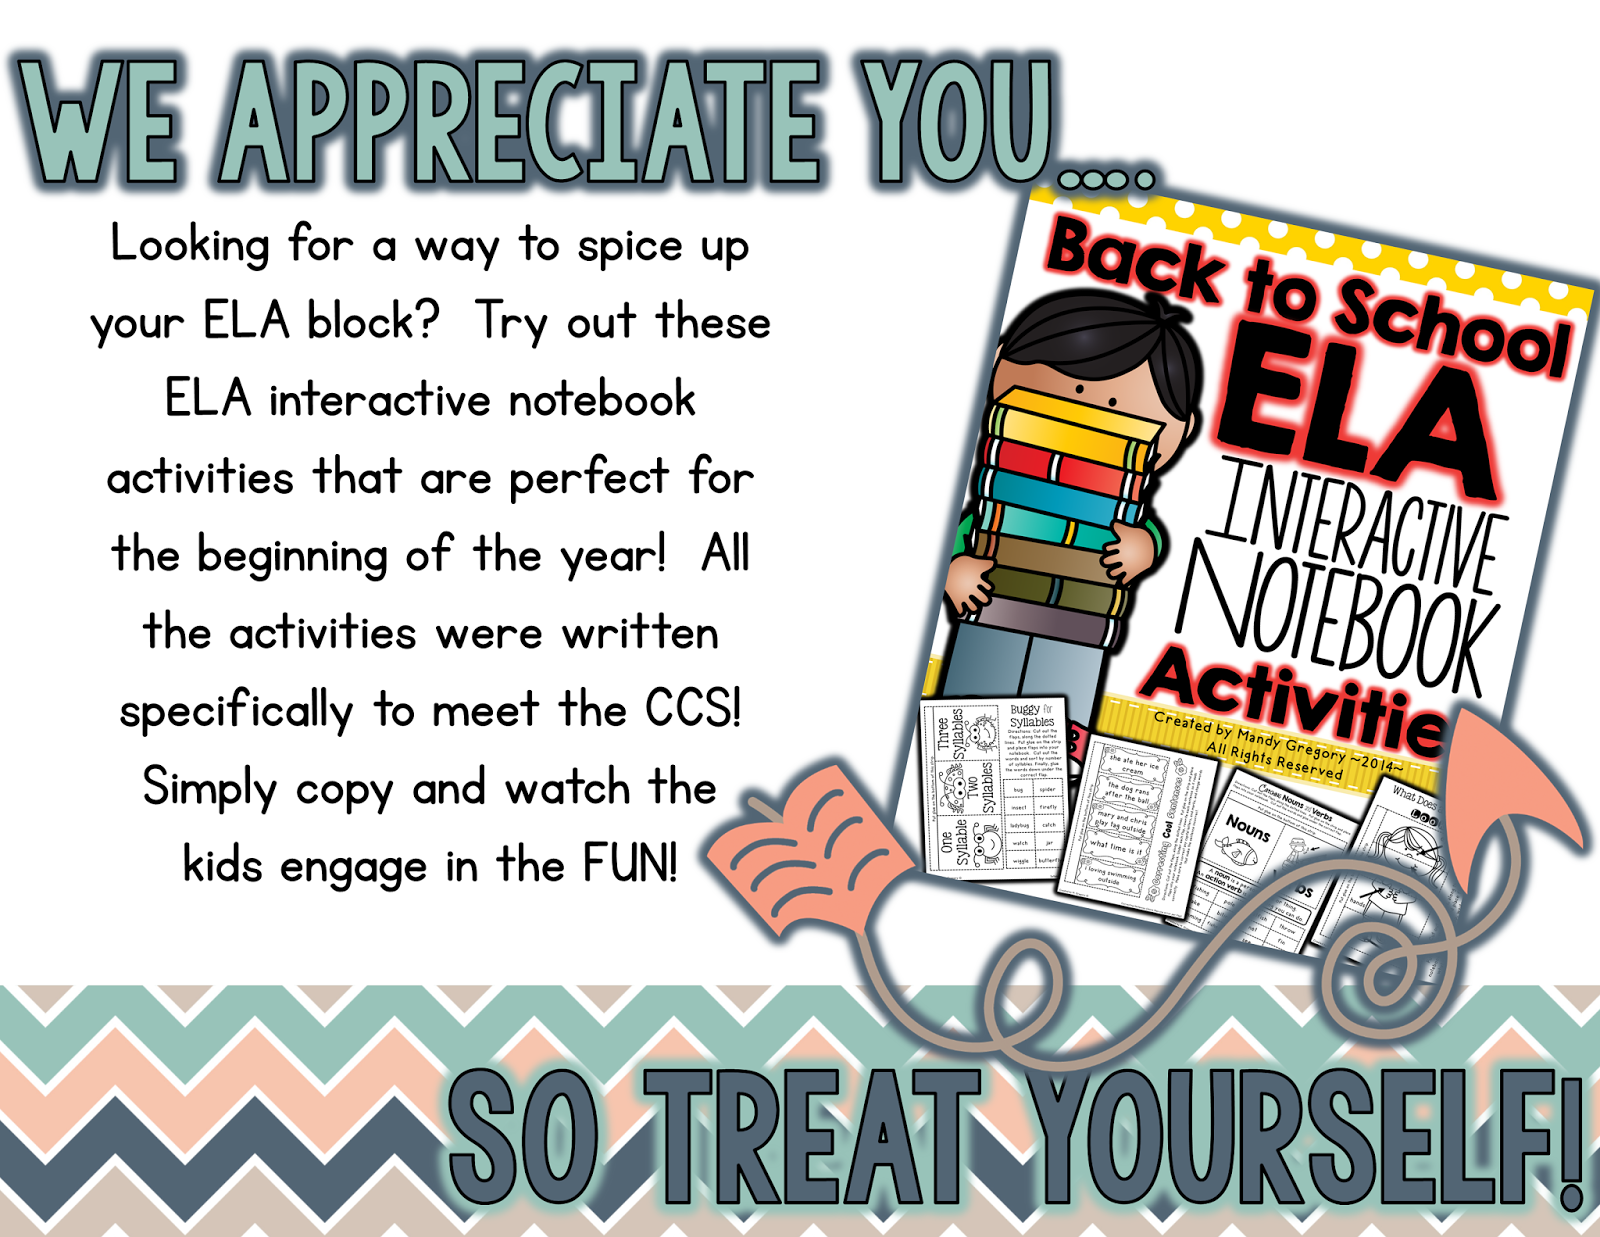 https://www.teacherspayteachers.com/Product/Back-to-School-ELA-Interactive-Notebook-2nd-Grade-1294735